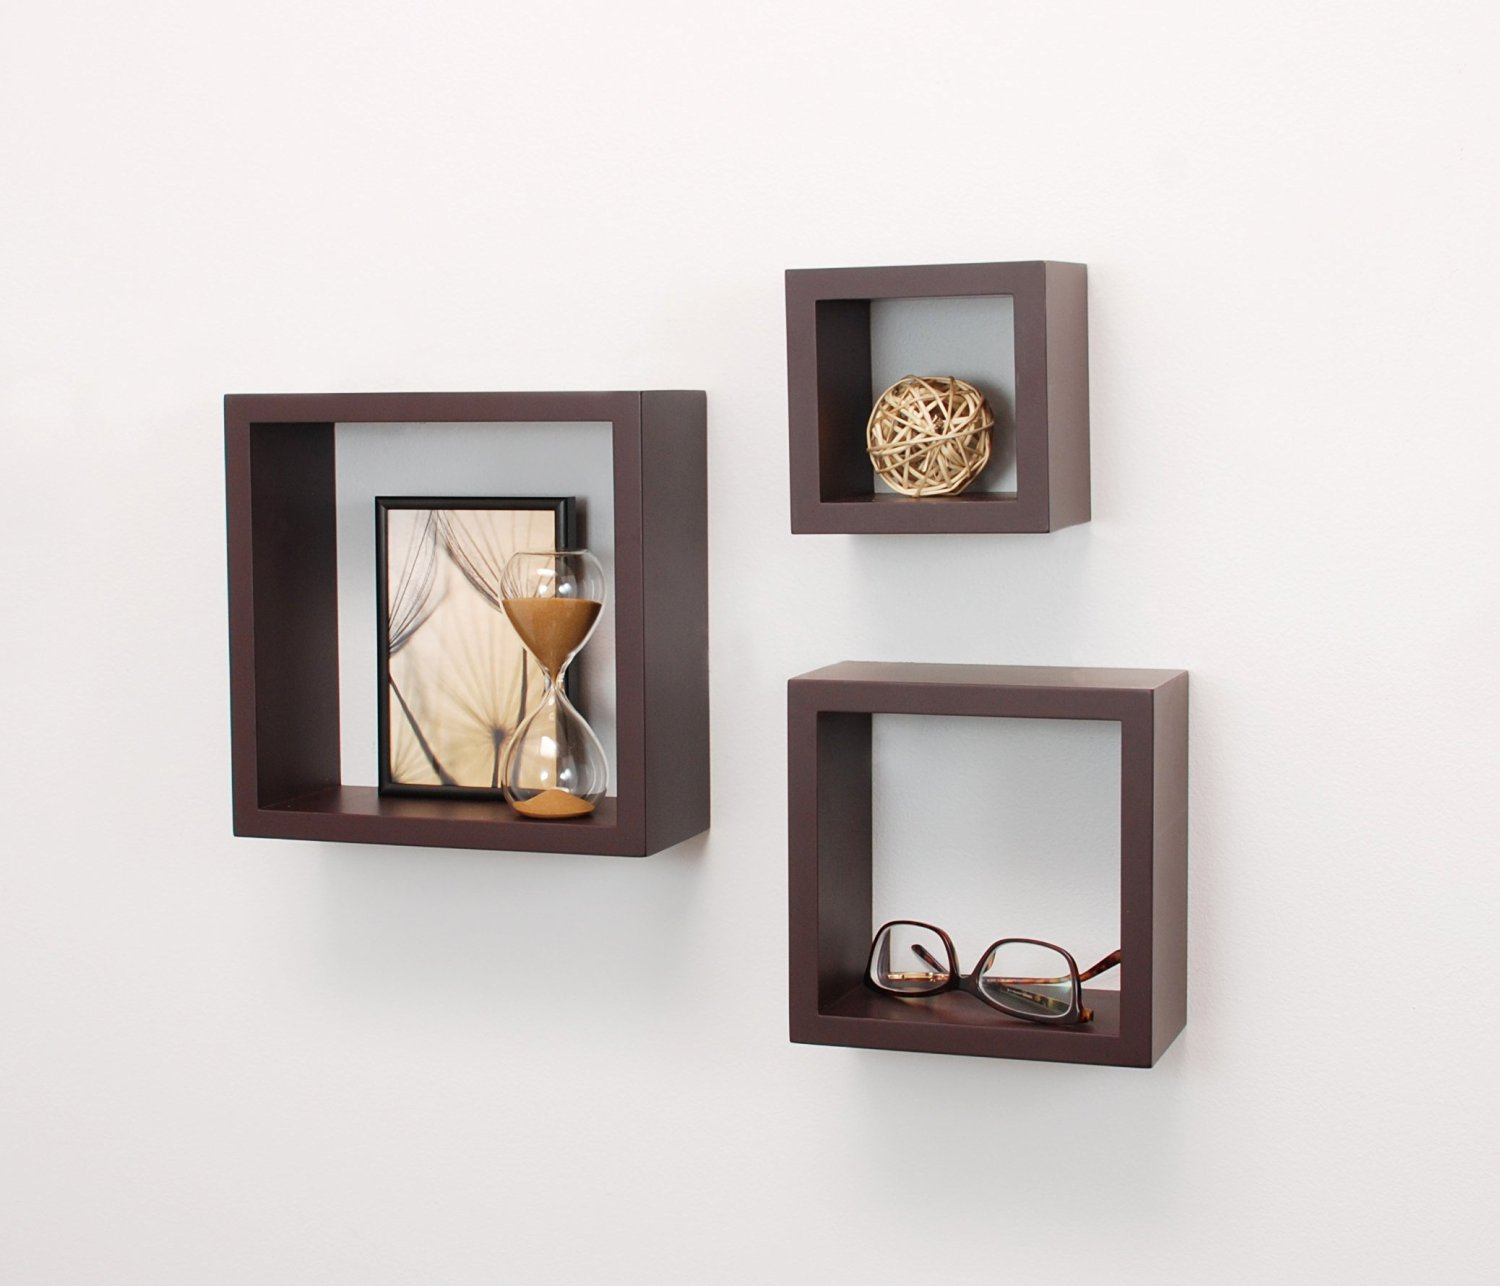 Cubbi contemporary floating wall shelves 5 by 5 inch 7 Modern floating wall shelves